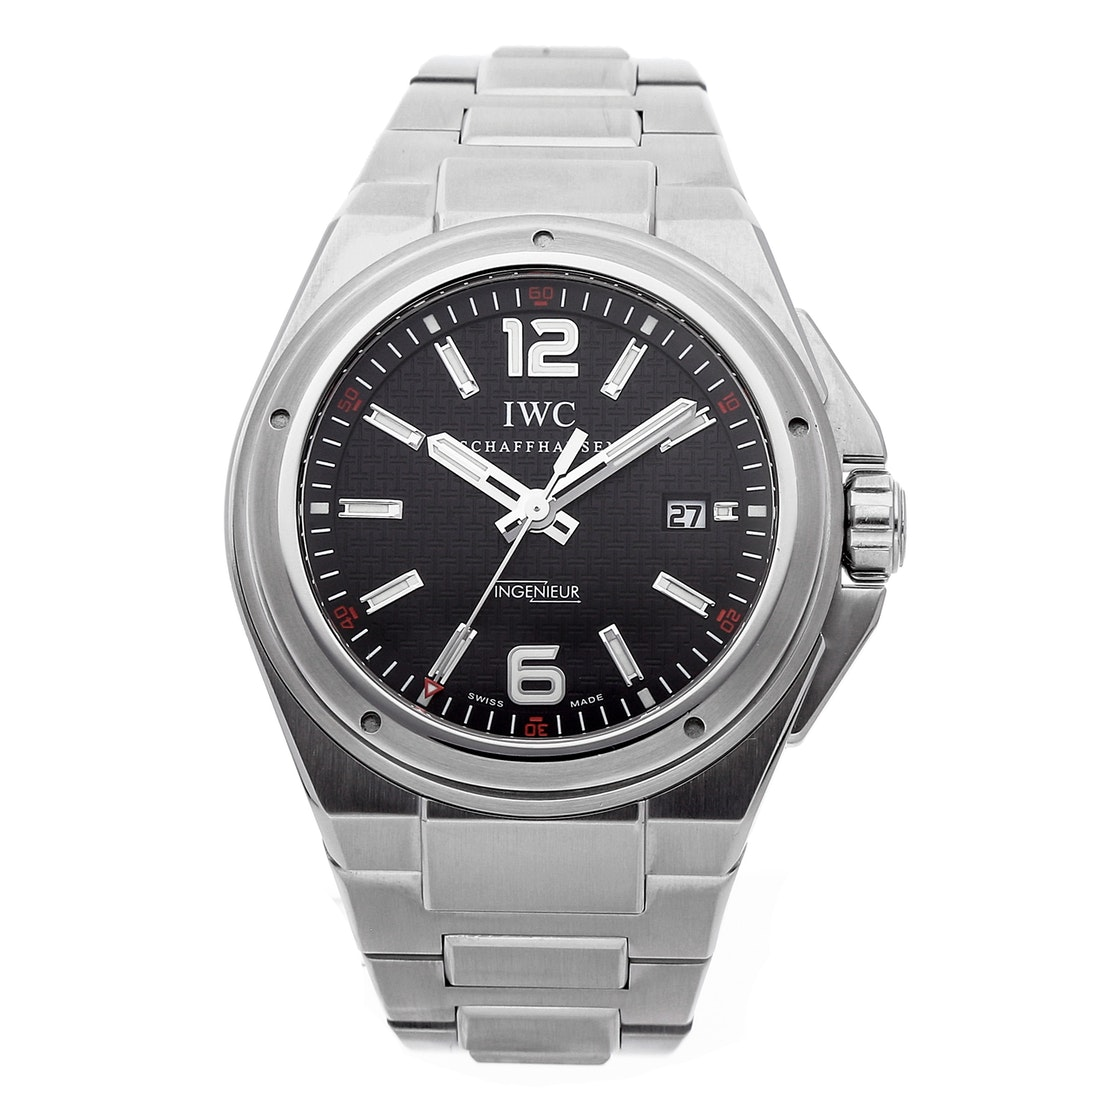 IWC Ingenieur Mission Earth IW3236-04